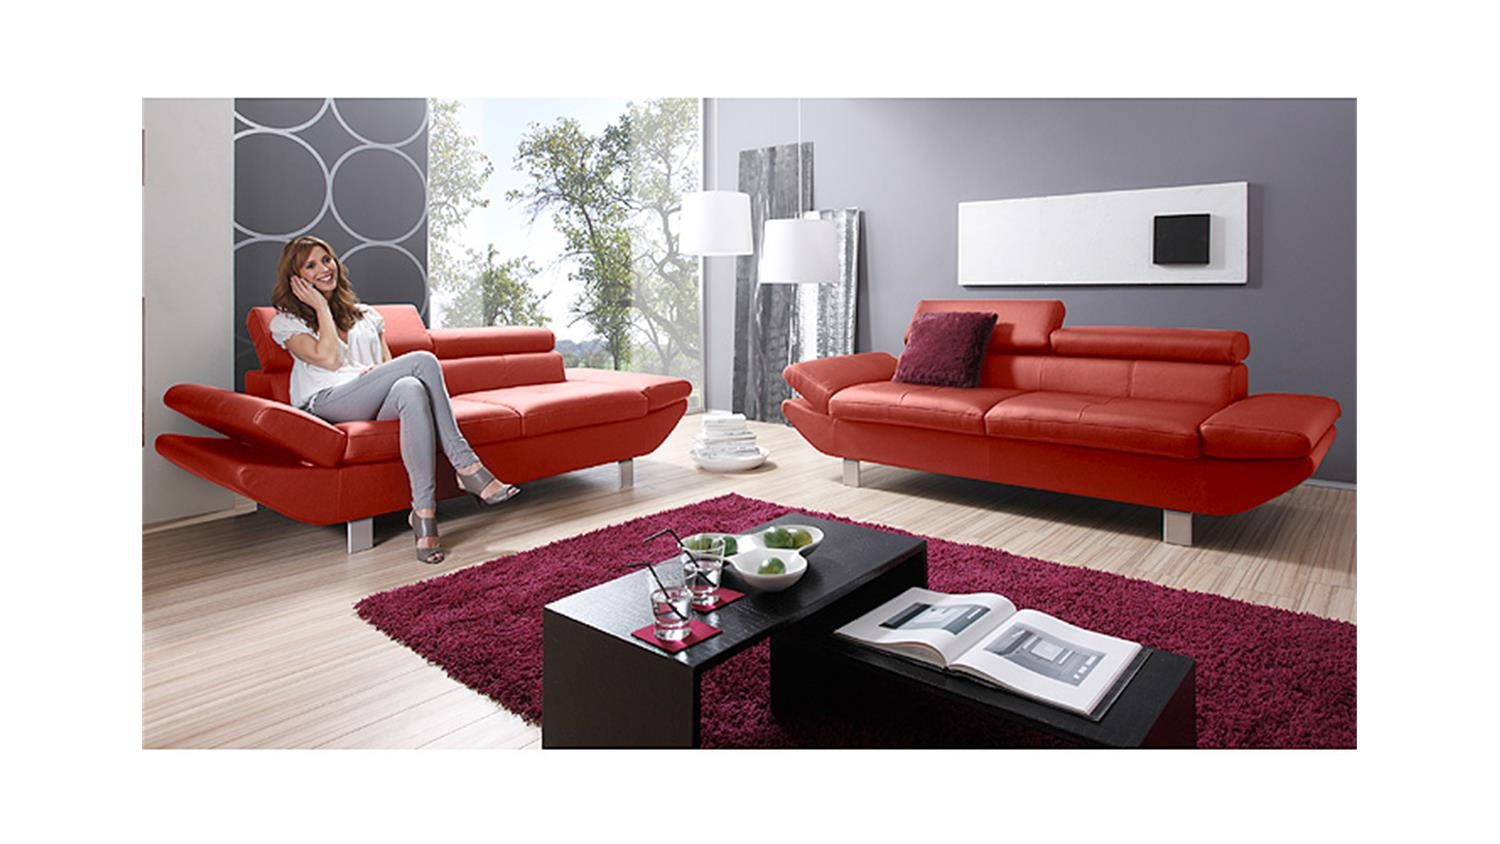 2er sofa carrier polsterm bel mit relaxfunktion rot 208 cm. Black Bedroom Furniture Sets. Home Design Ideas